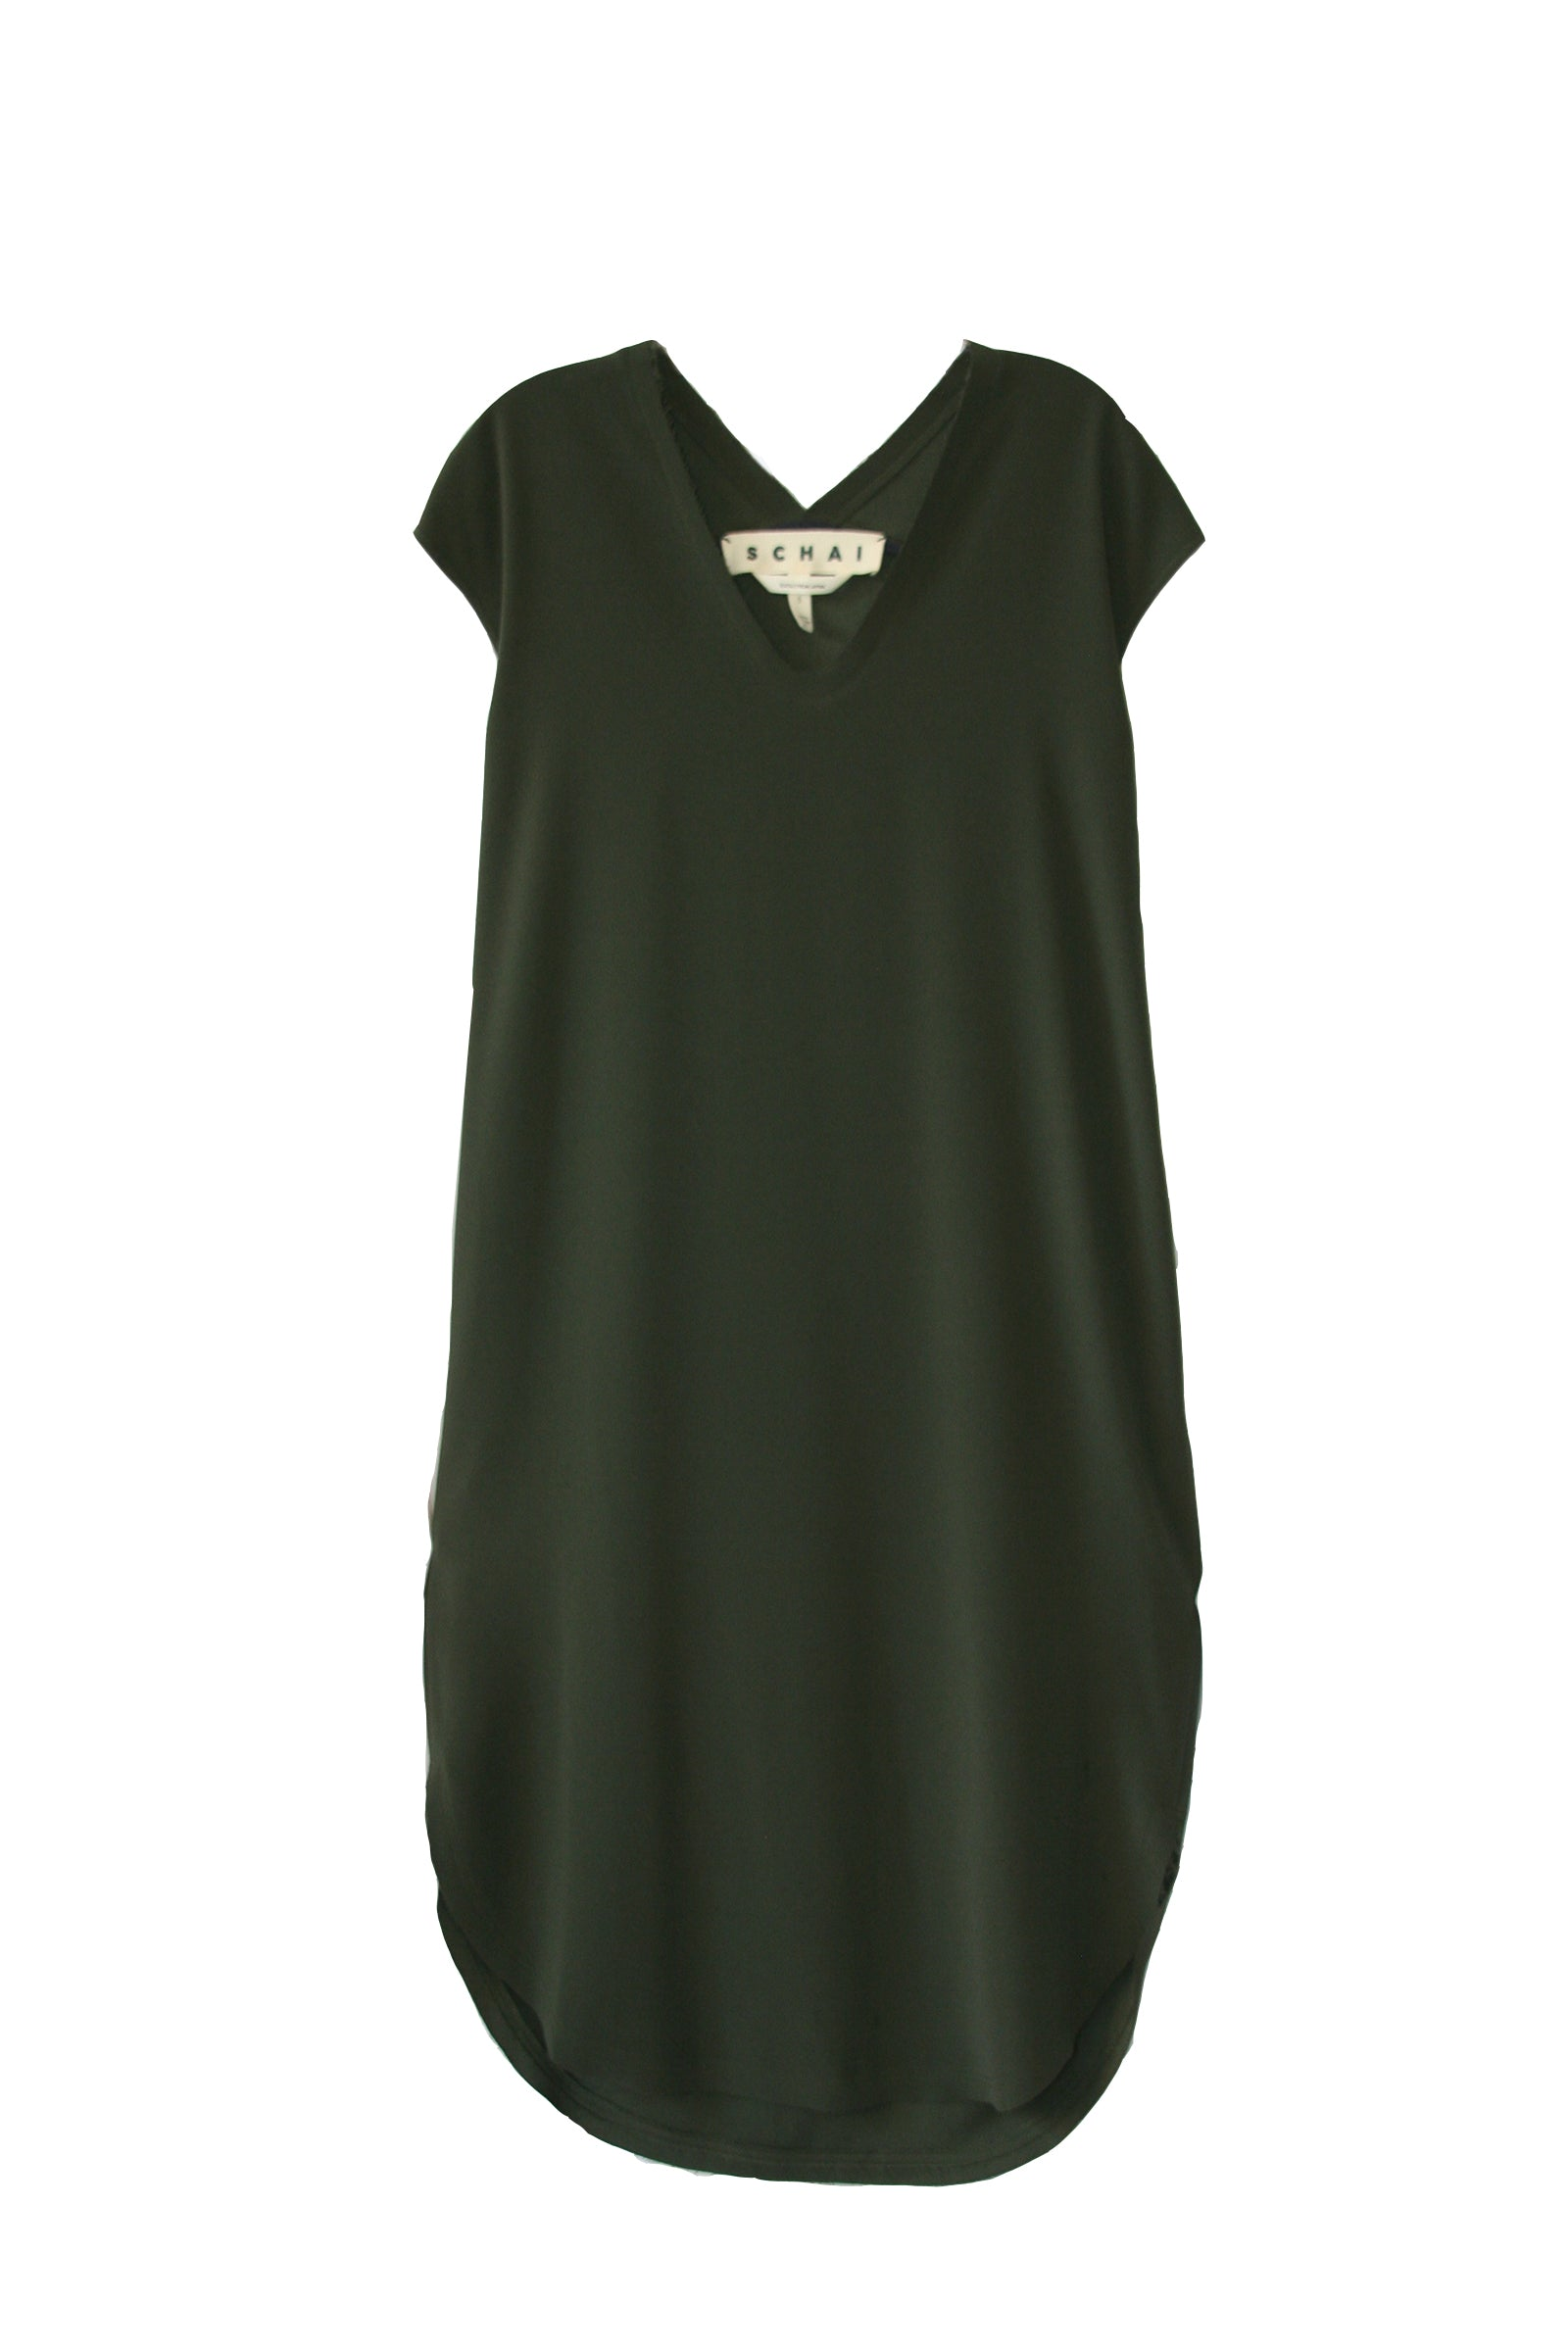 Drappo Lean Dress - Olivene